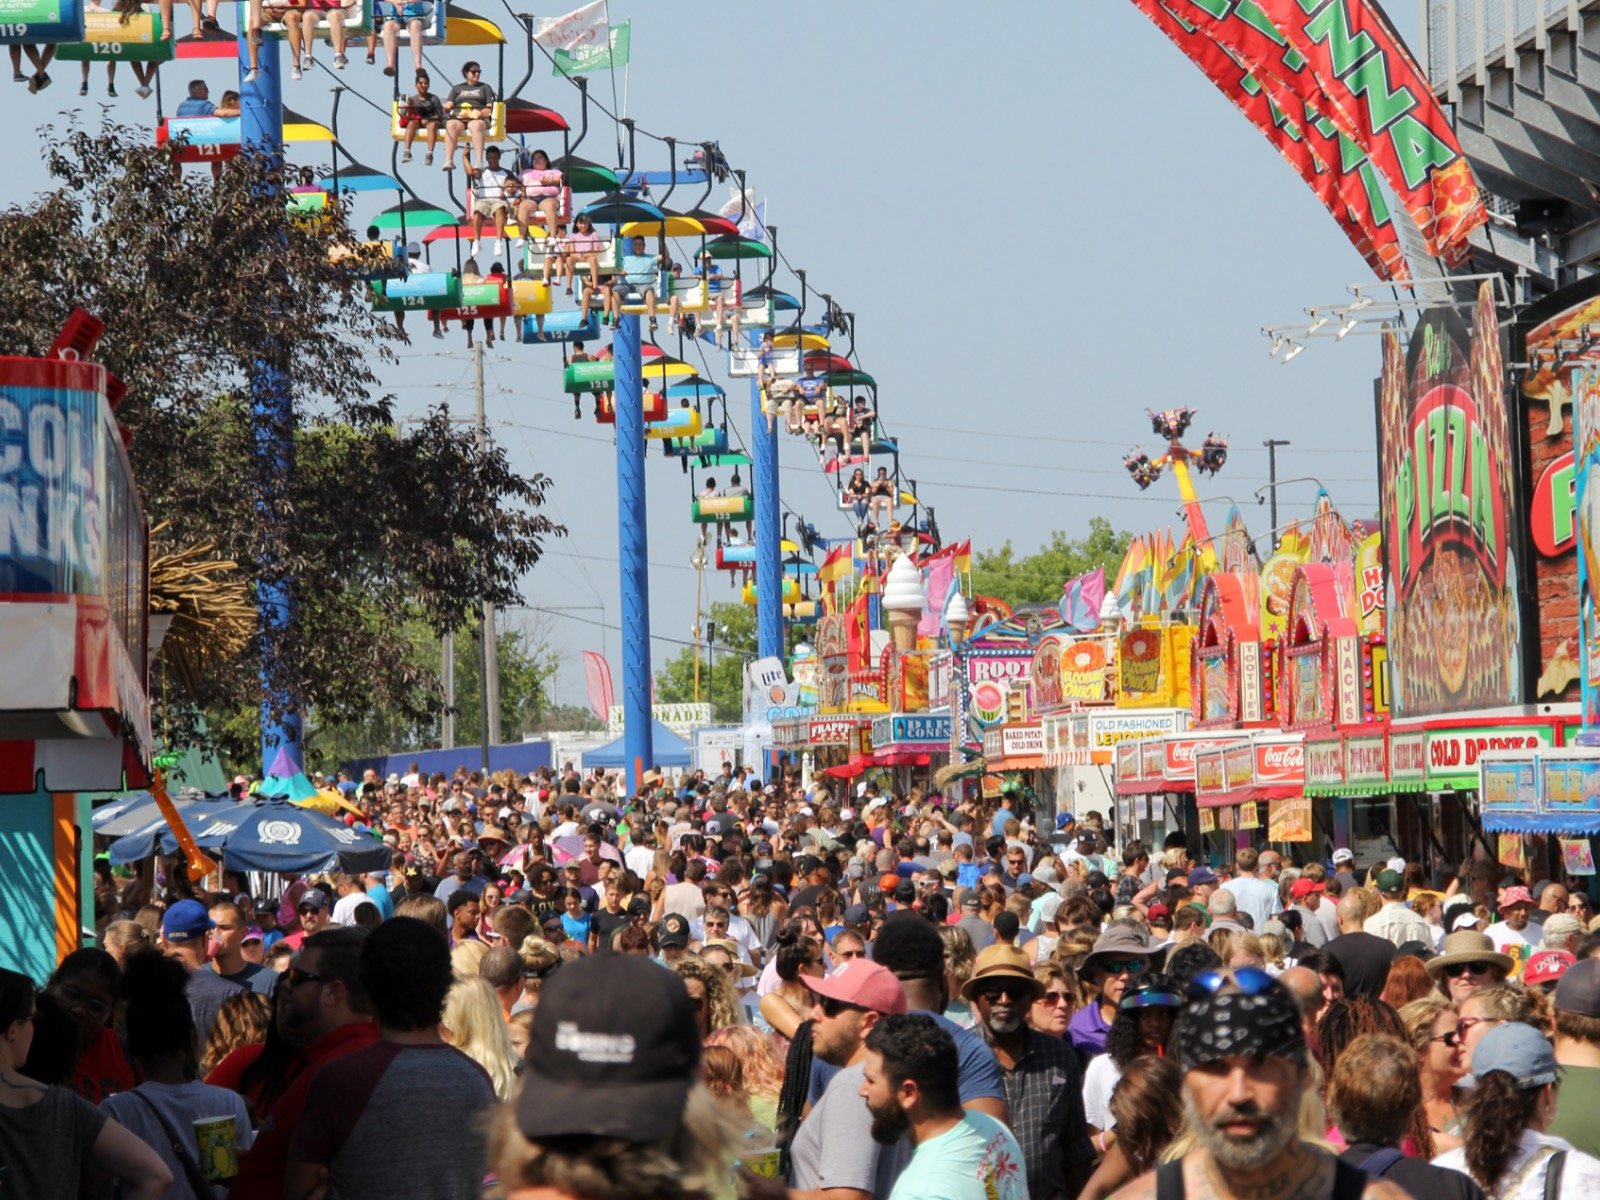 The 2019 State Fair recorded the second highest attendance in its 1600x1200